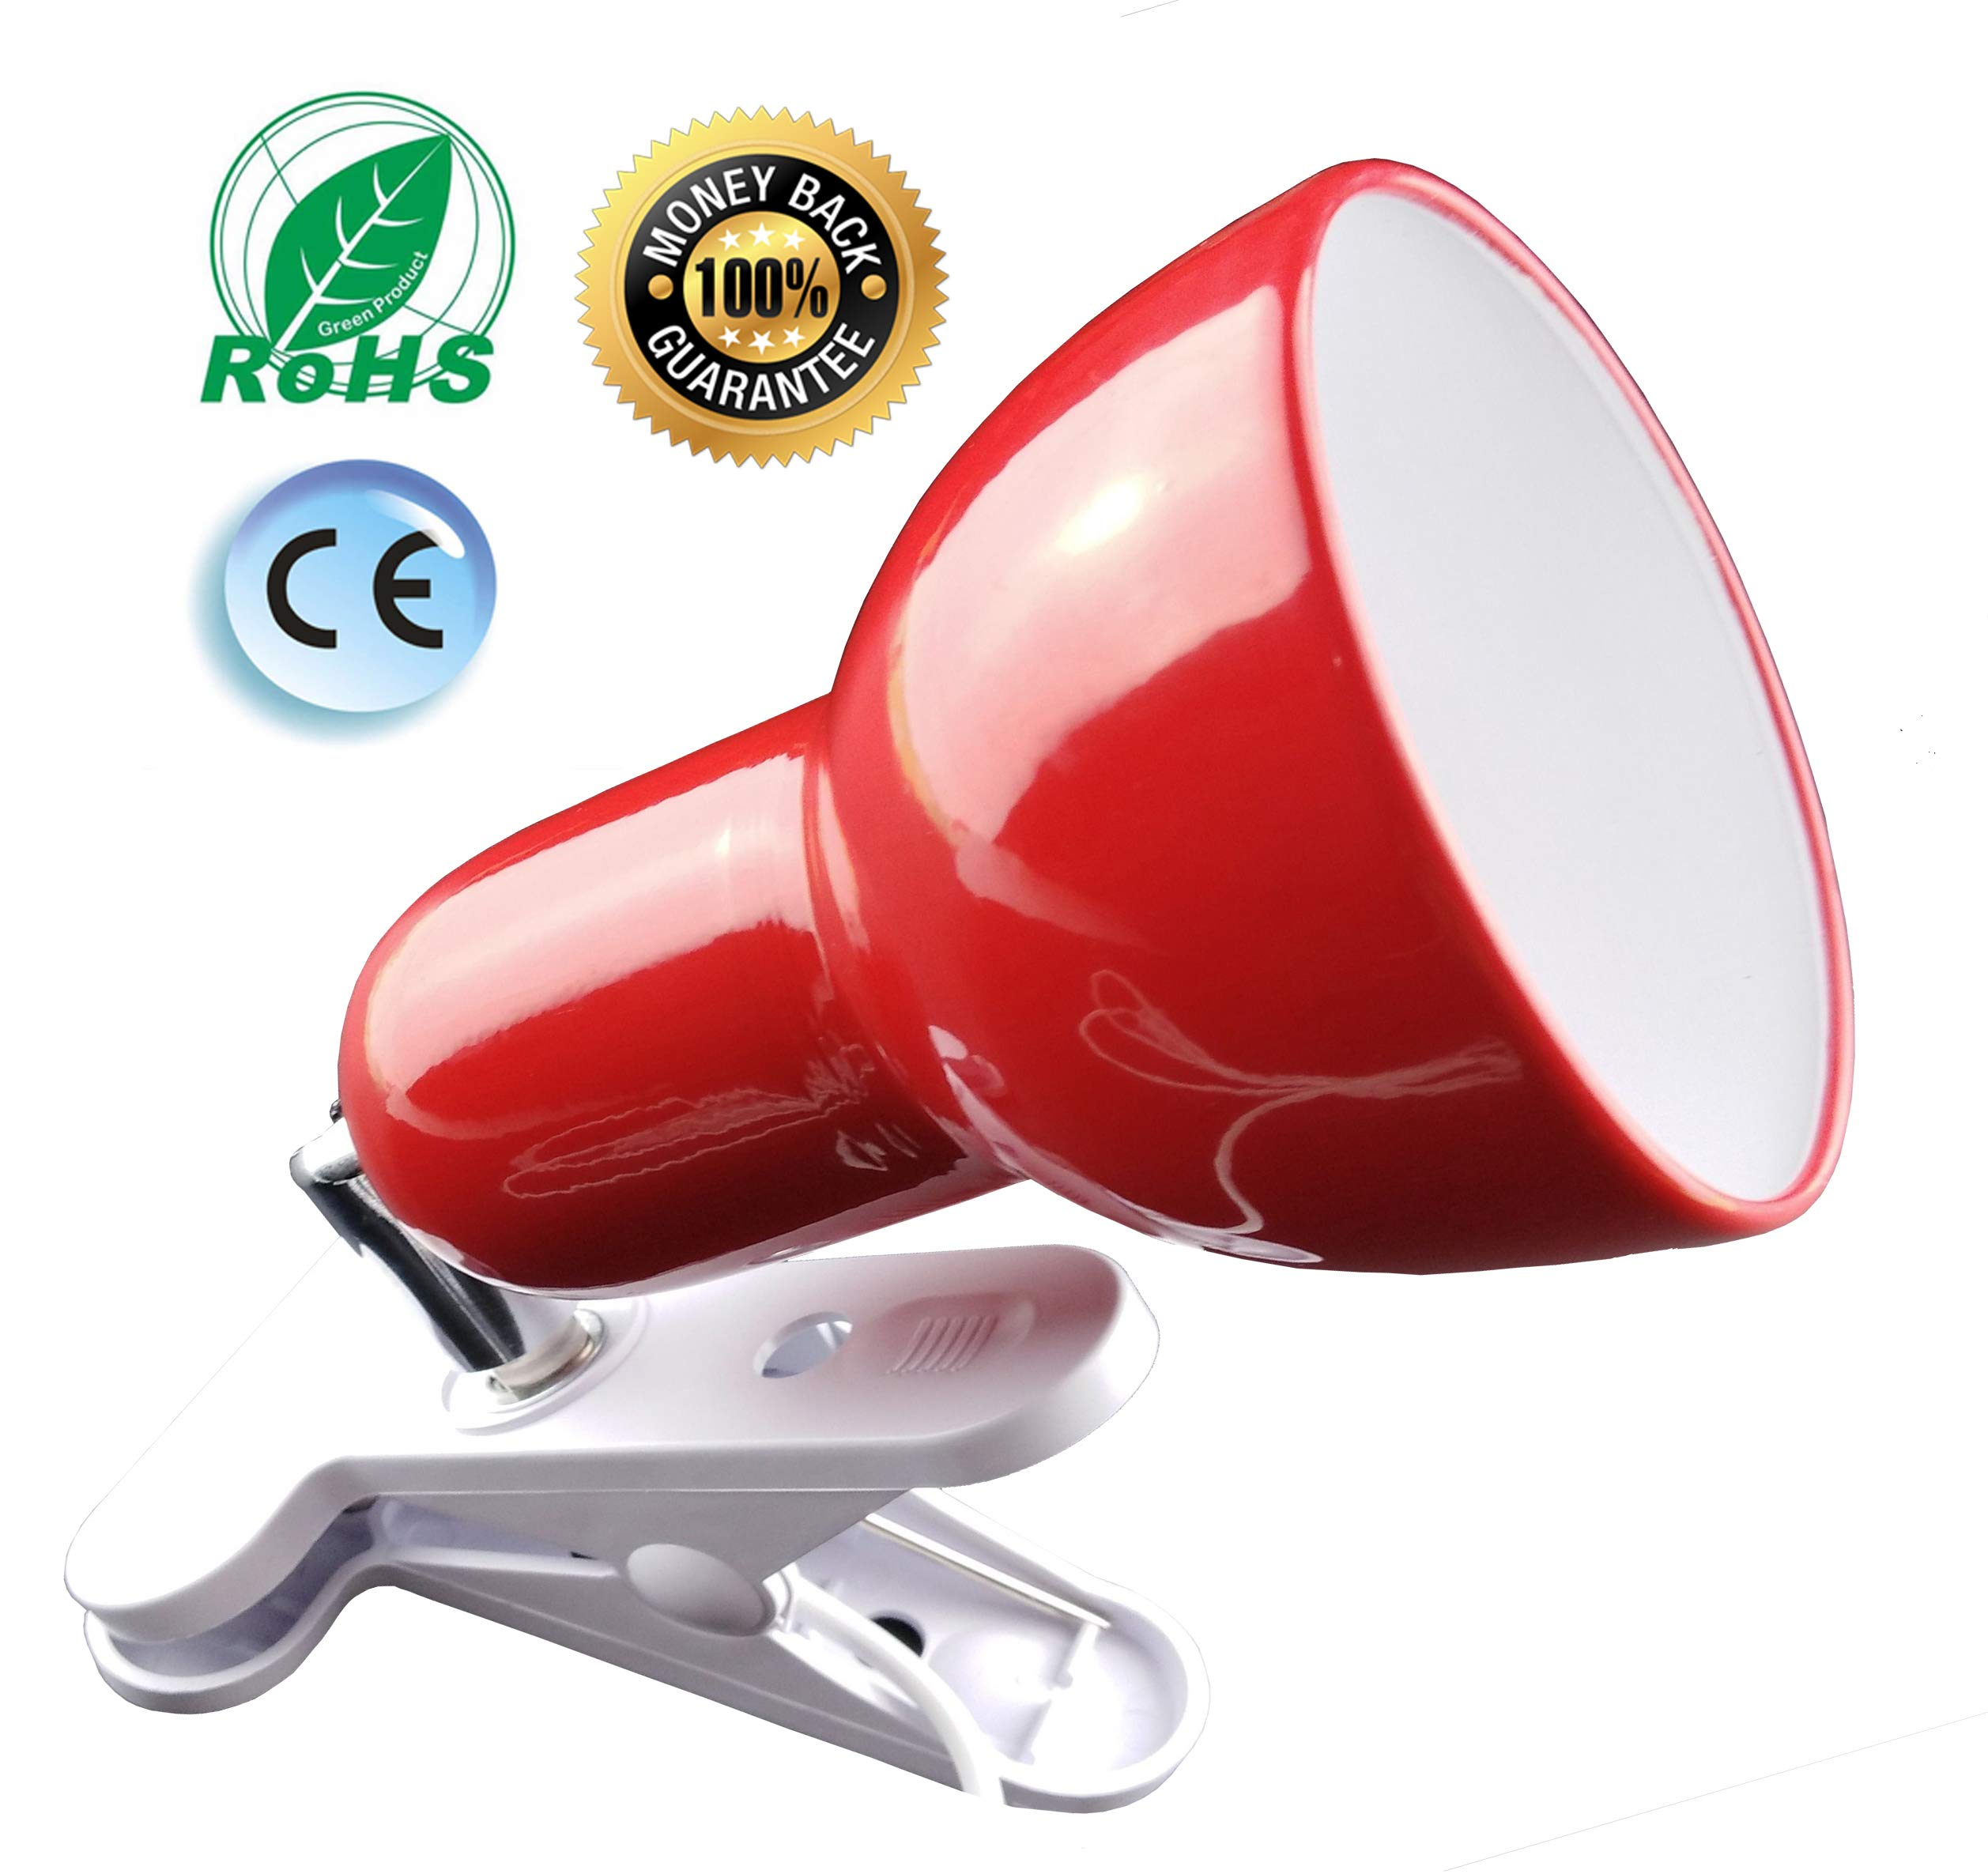 Cilp on Light,360° Rotation Clip on Lamp Portable Book Reading Light,Clamp on Desk/Table/Bunk Bed/Cupboard Home Lighting, (Clamp Light Seven Colors for Your Choice)''Red'' by Sun-Rising